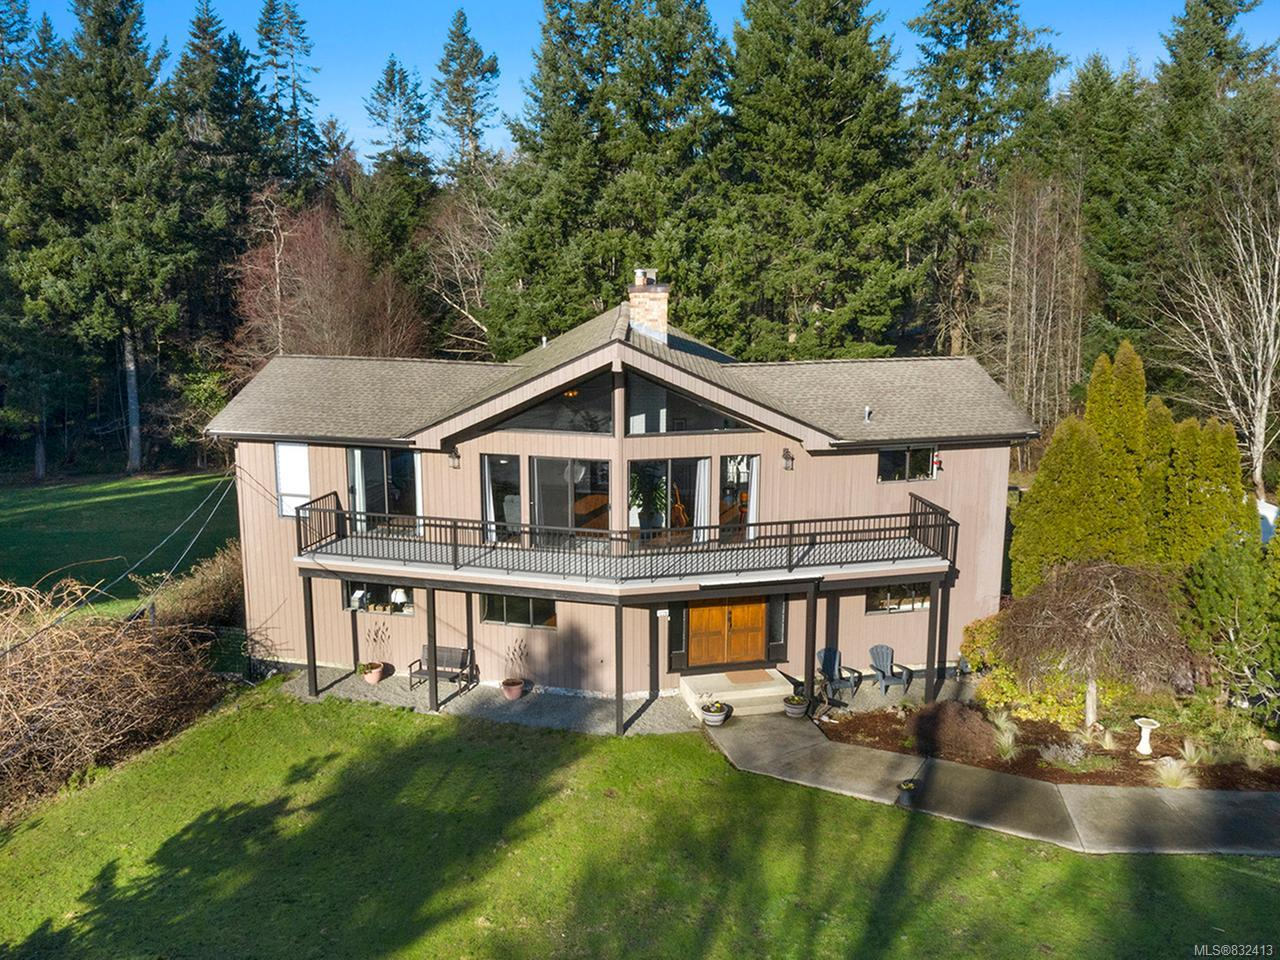 FEATURED LISTING: 1226 Walter Gage St COMOX